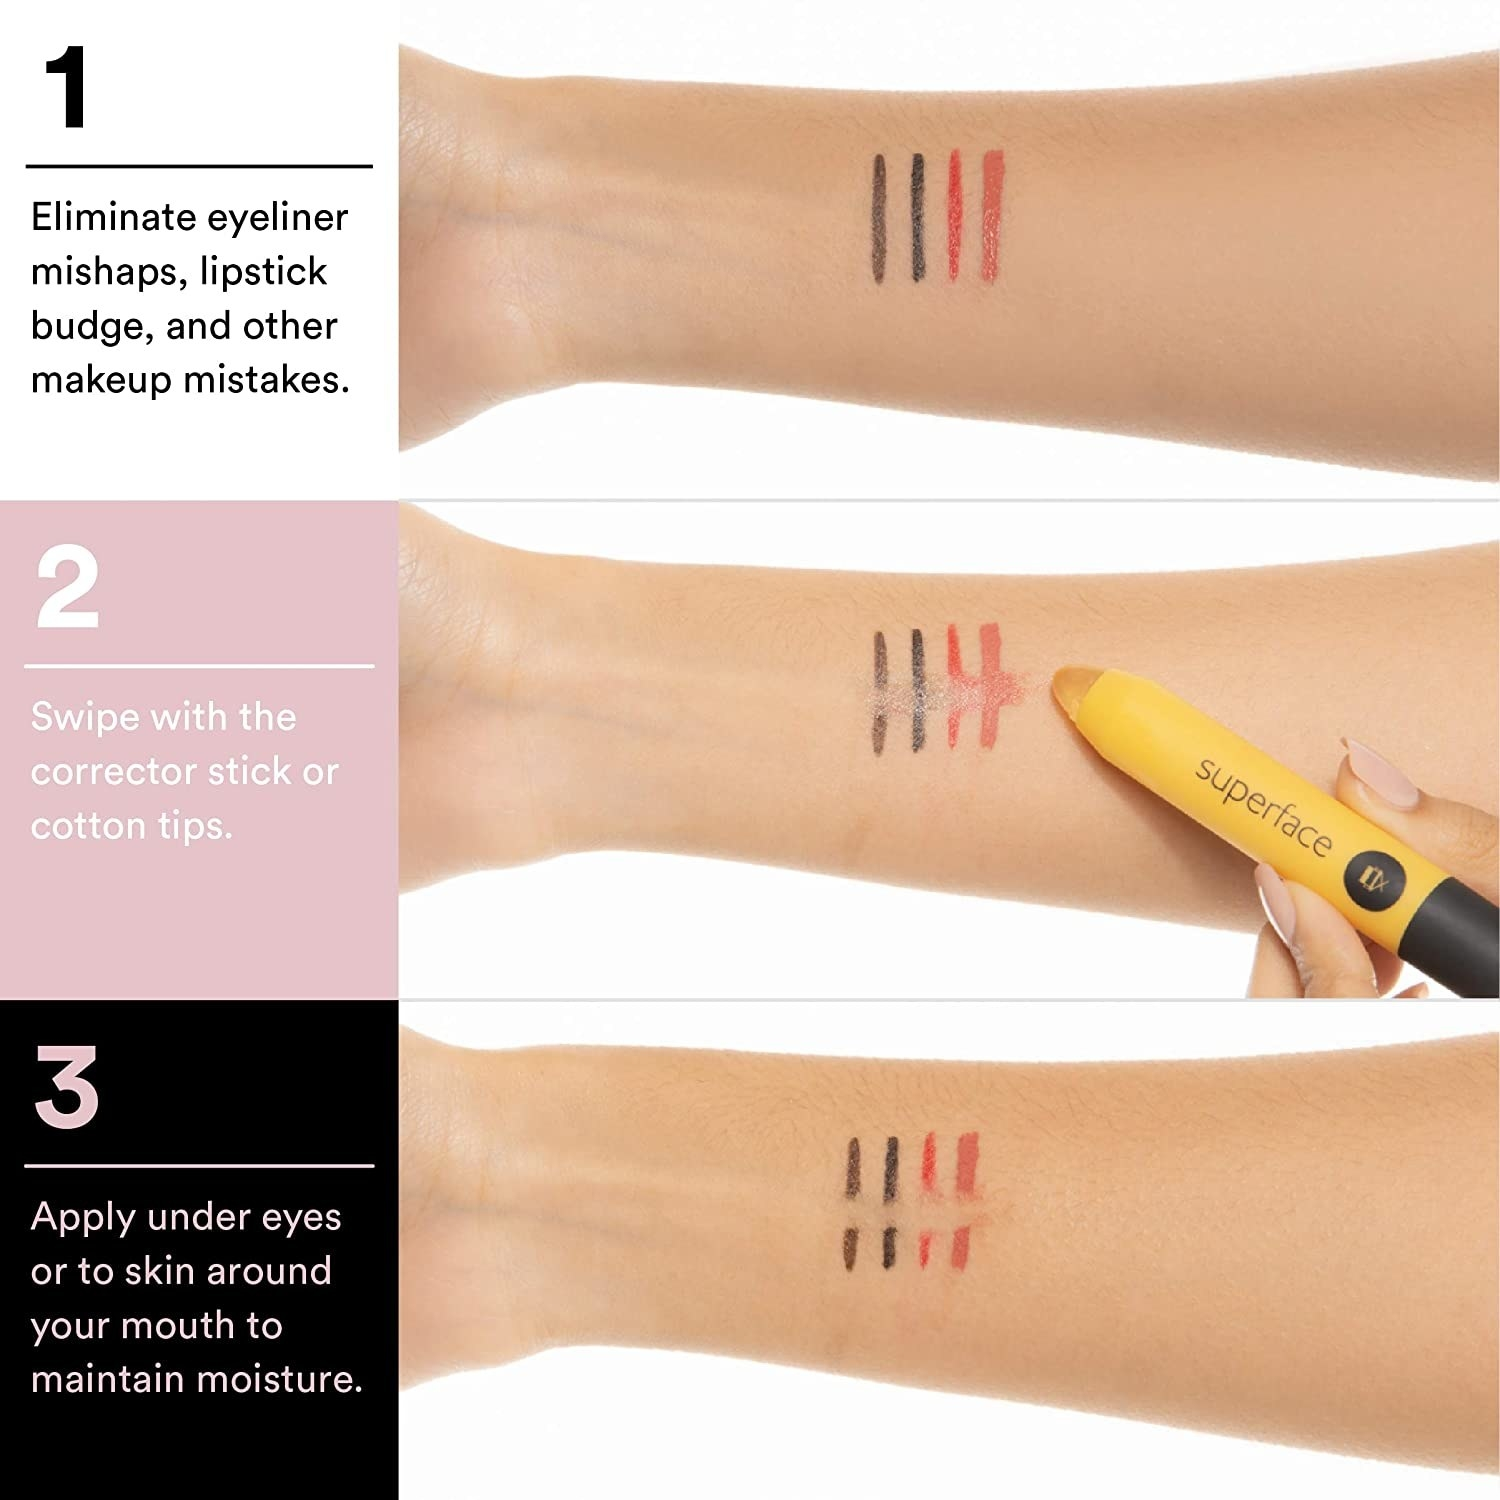 eyeliners on a forearm with them cleaning removed with the pen